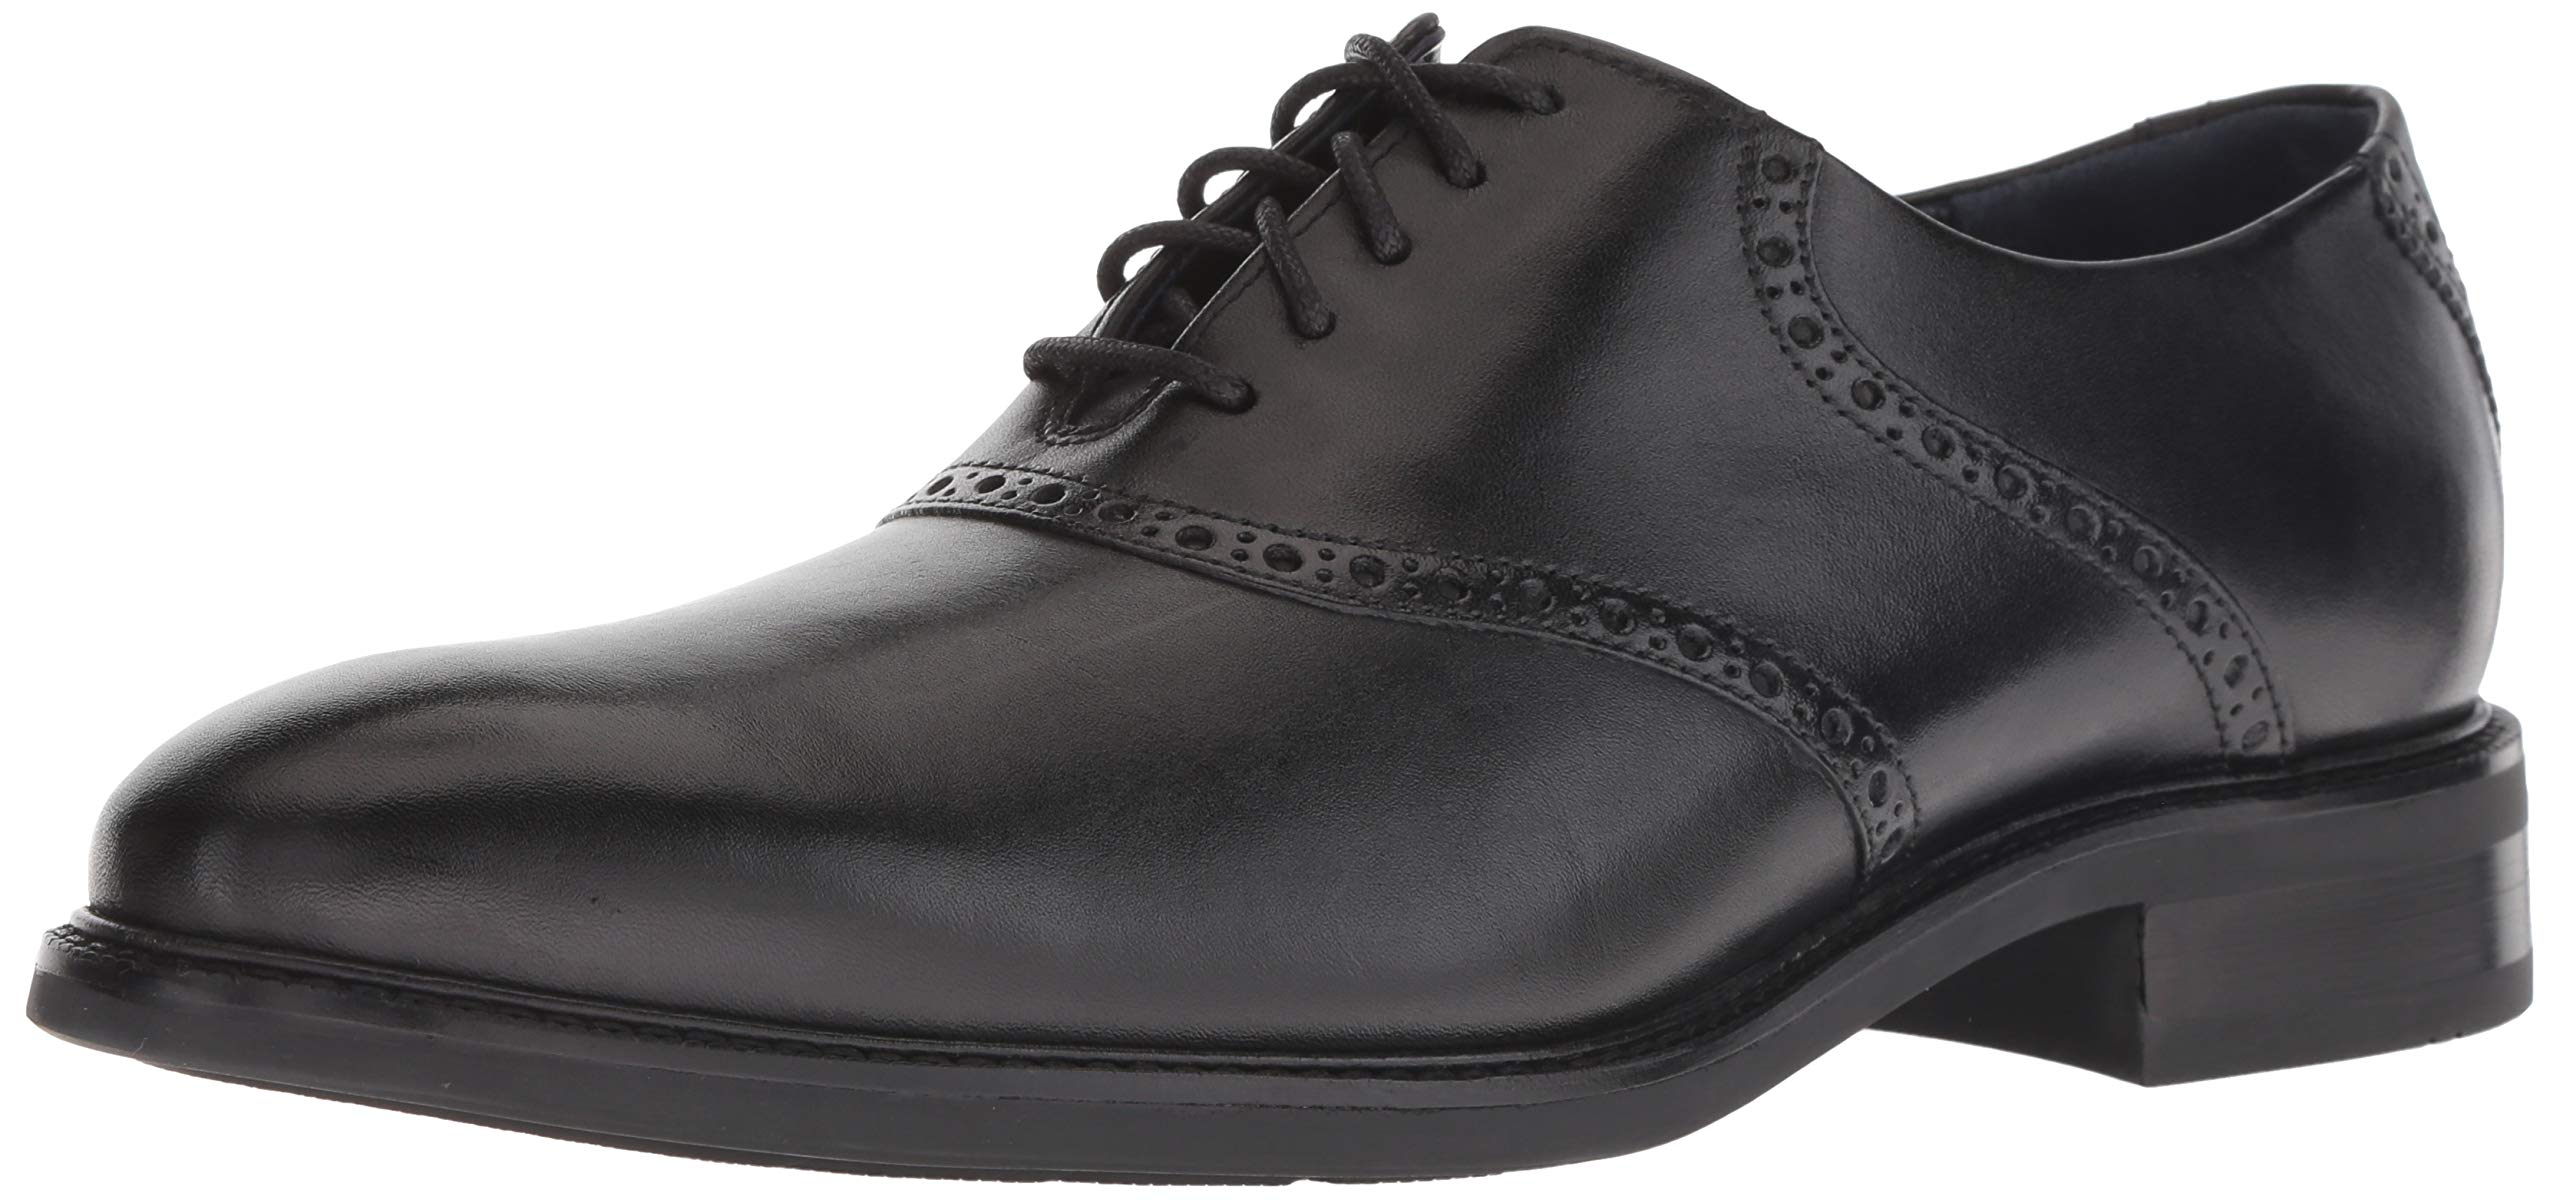 Cole Haan Men's Buckland Saddle OX Oxford, Black, 10.5 M US